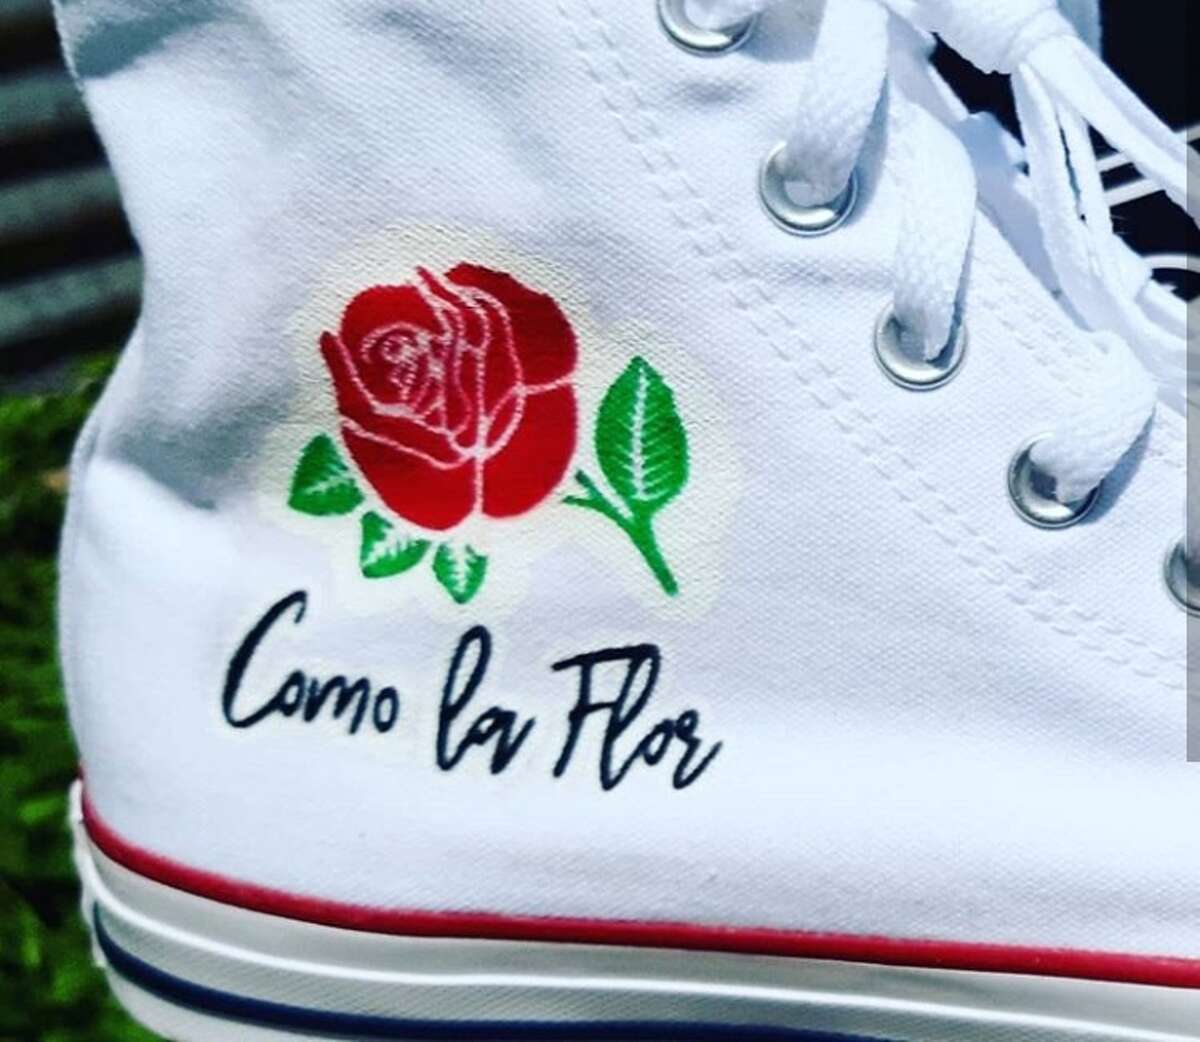 Juan Garcia III, owner of J3 Customs, created art fit for the Tejano Queen on a pair of Converse for a fan named Jorge Bernal. Garcia said Bernal contacted him with the idea to create a Selena-themed pair to wear to Fiesta de la Flor, the annual festival celebrating Selena's life and legacy, and Garcia was happy to get the job done.